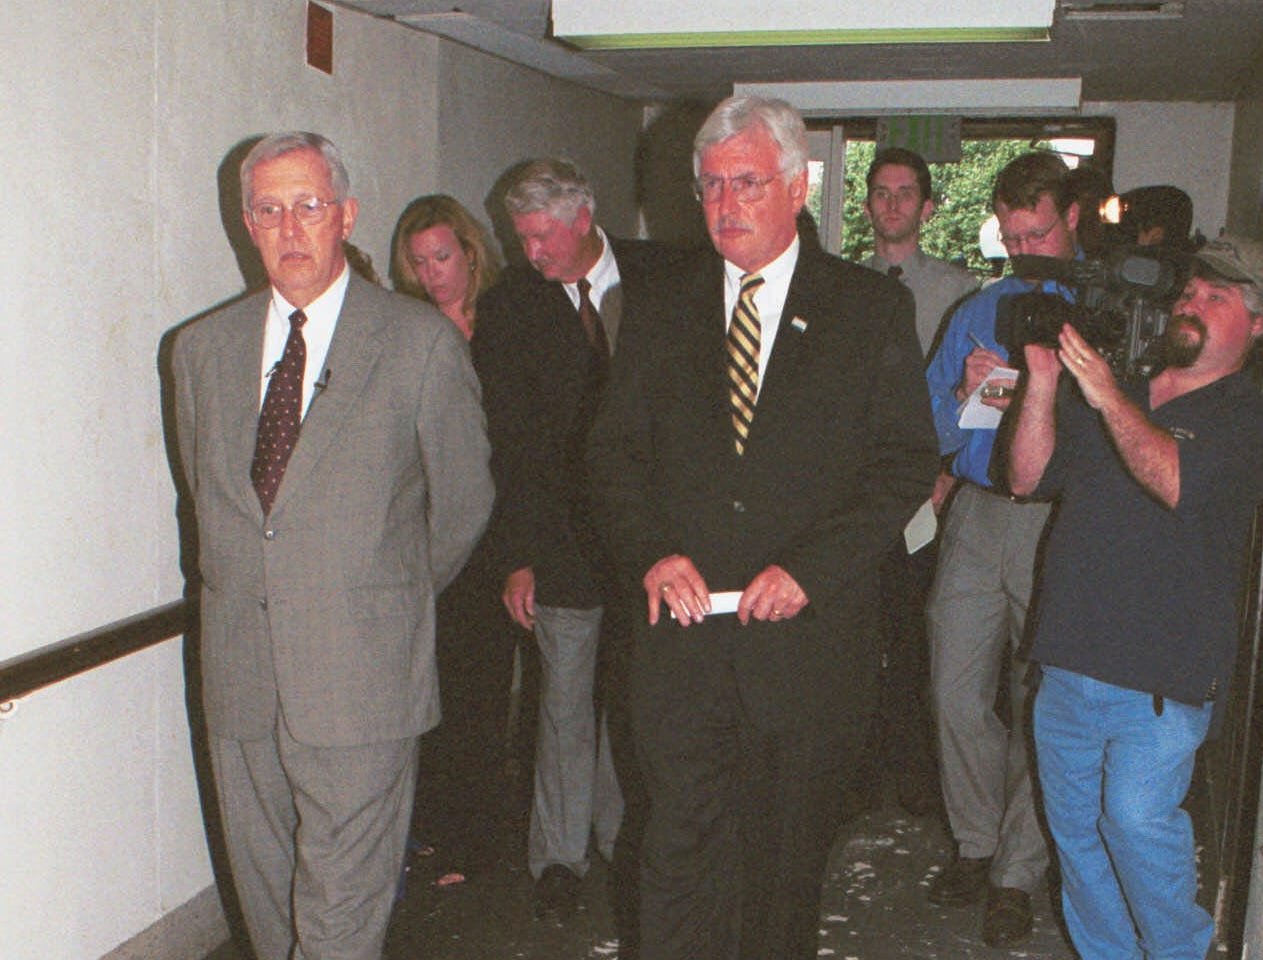 Tennessee Gov. Don Sundquist, left, tours the old Sherrod Library building with East Tennessee State University President Dr. Paul Stanton Tuesday, July 24, 2001 in Johnson City, Tenn.  The building was built in 1966 and has not been able to be utilized due to fund shortage since new library was built.  (AP Photo/Earl Neikirk)